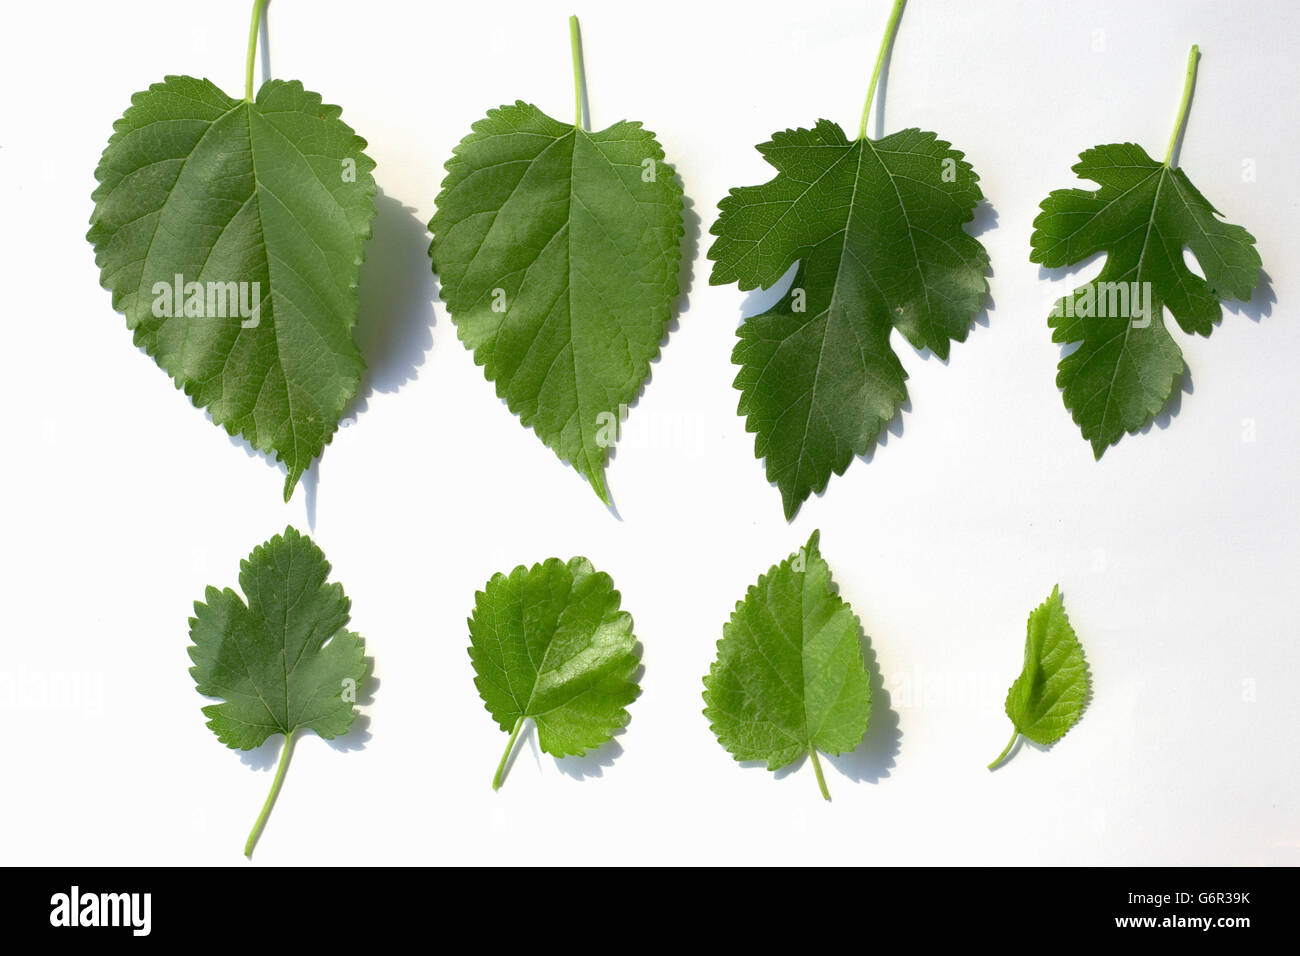 Picture Of A Mulberry Tree Leaf